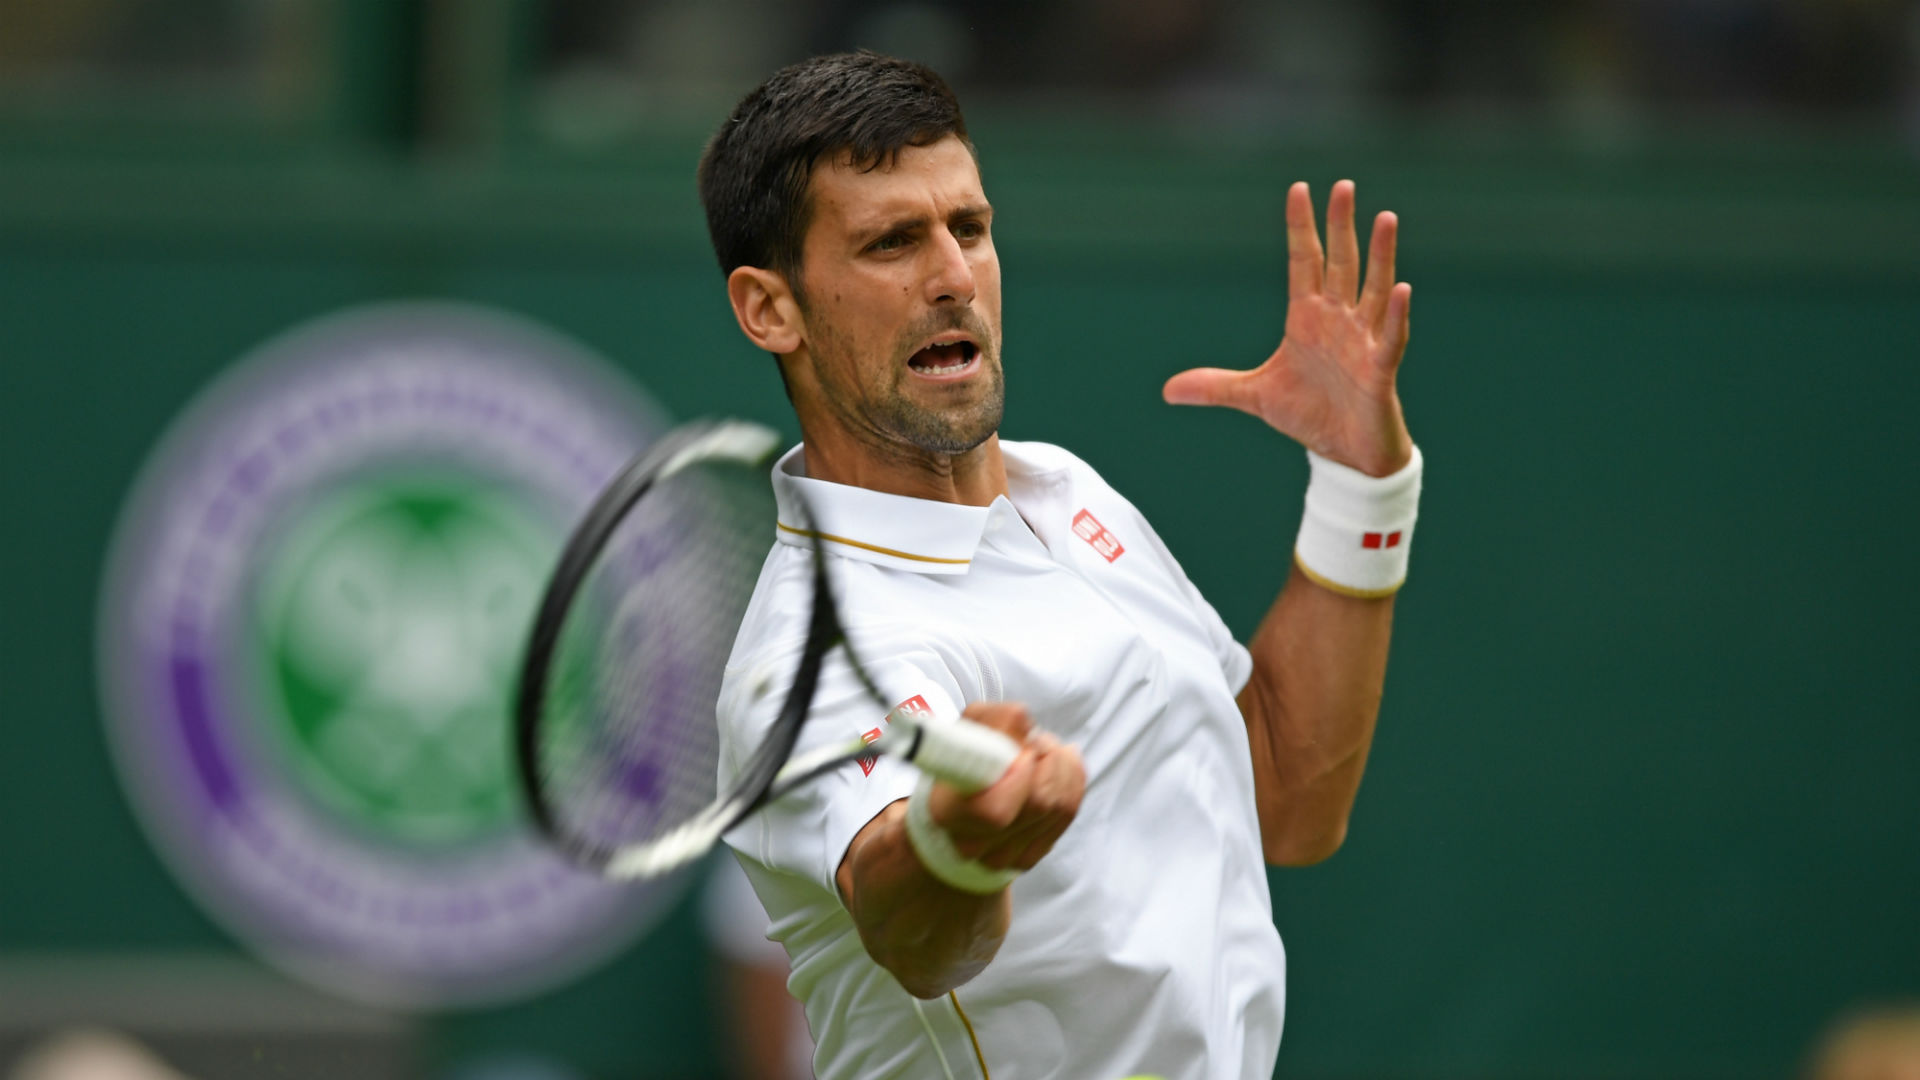 Read Back all the Points how Djokovic Beat Pavlasek to Enter the 1920x1080